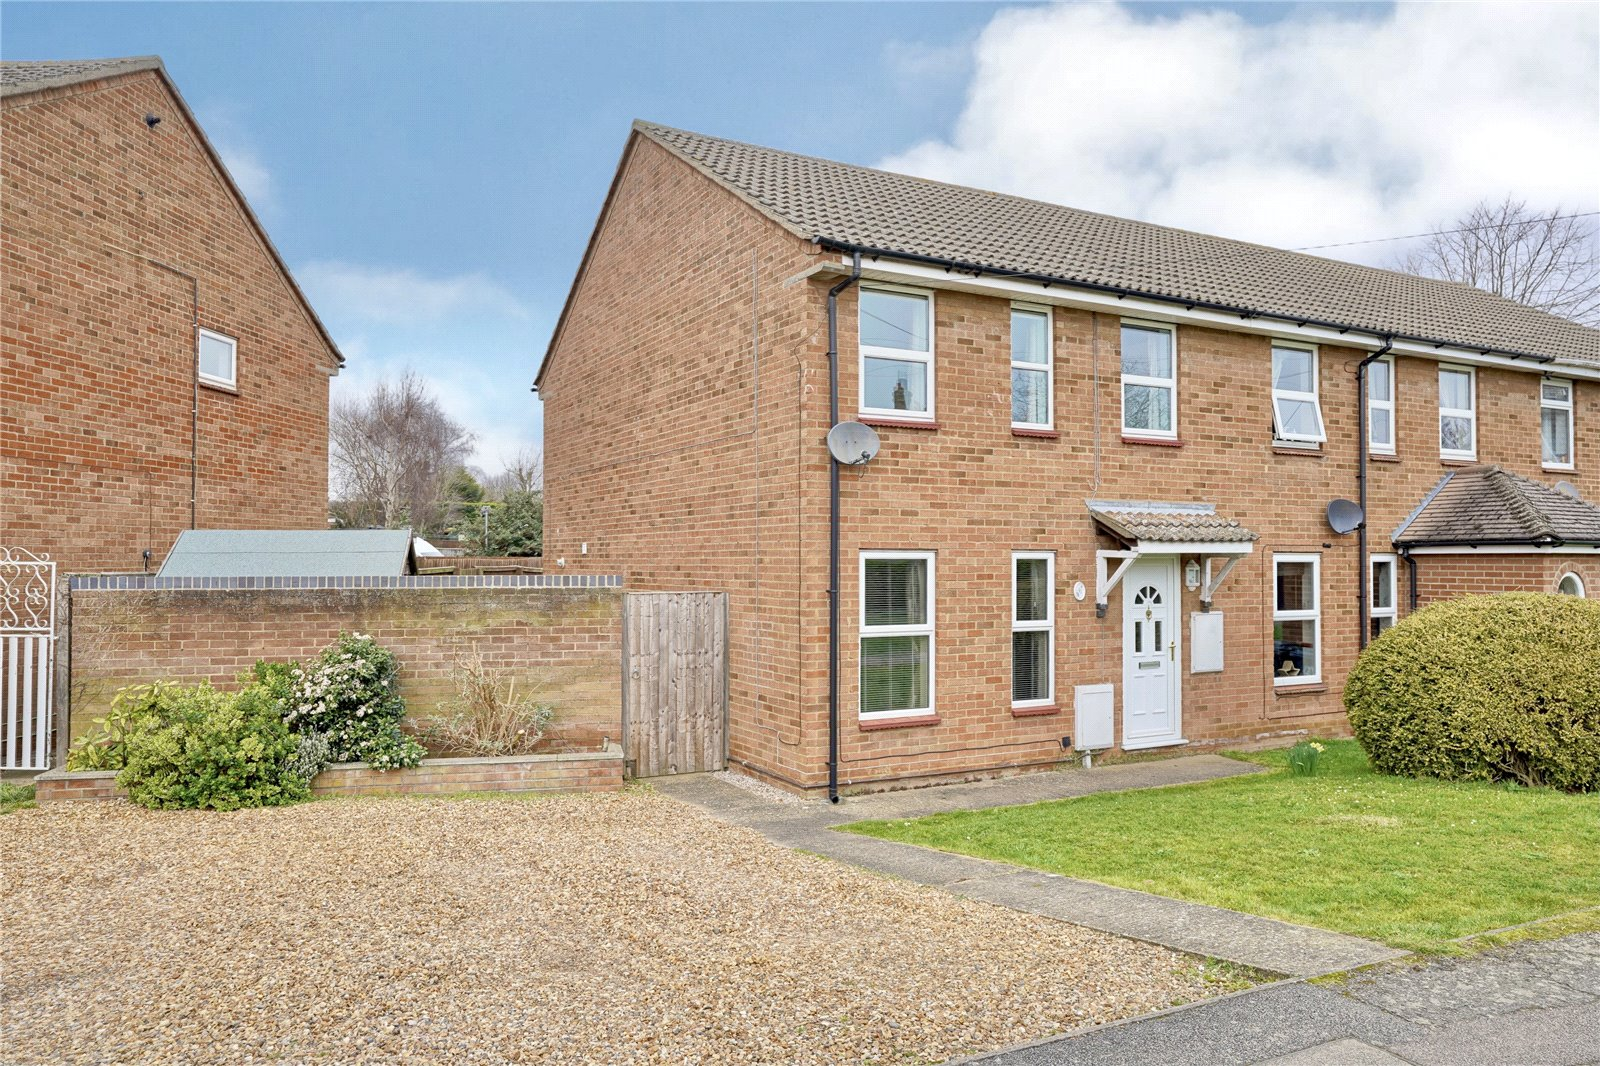 3 bed house for sale in Earith, PE28 3PU - Property Image 1